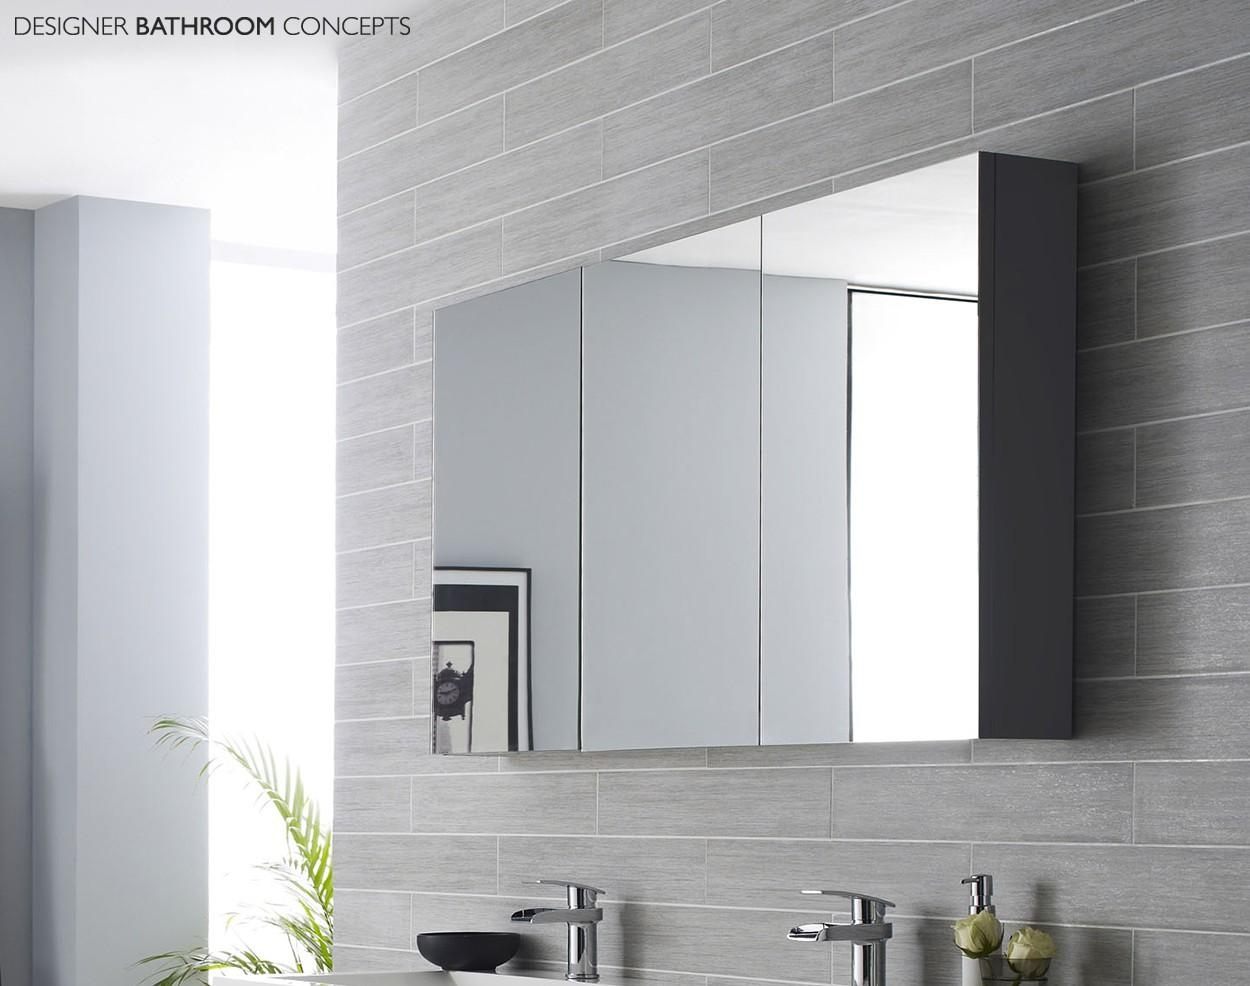 Surprising Large Mirrored Bathroom Cabinet Wall Mirror For With In Bathroom Cabinets Mirrors (View 4 of 20)